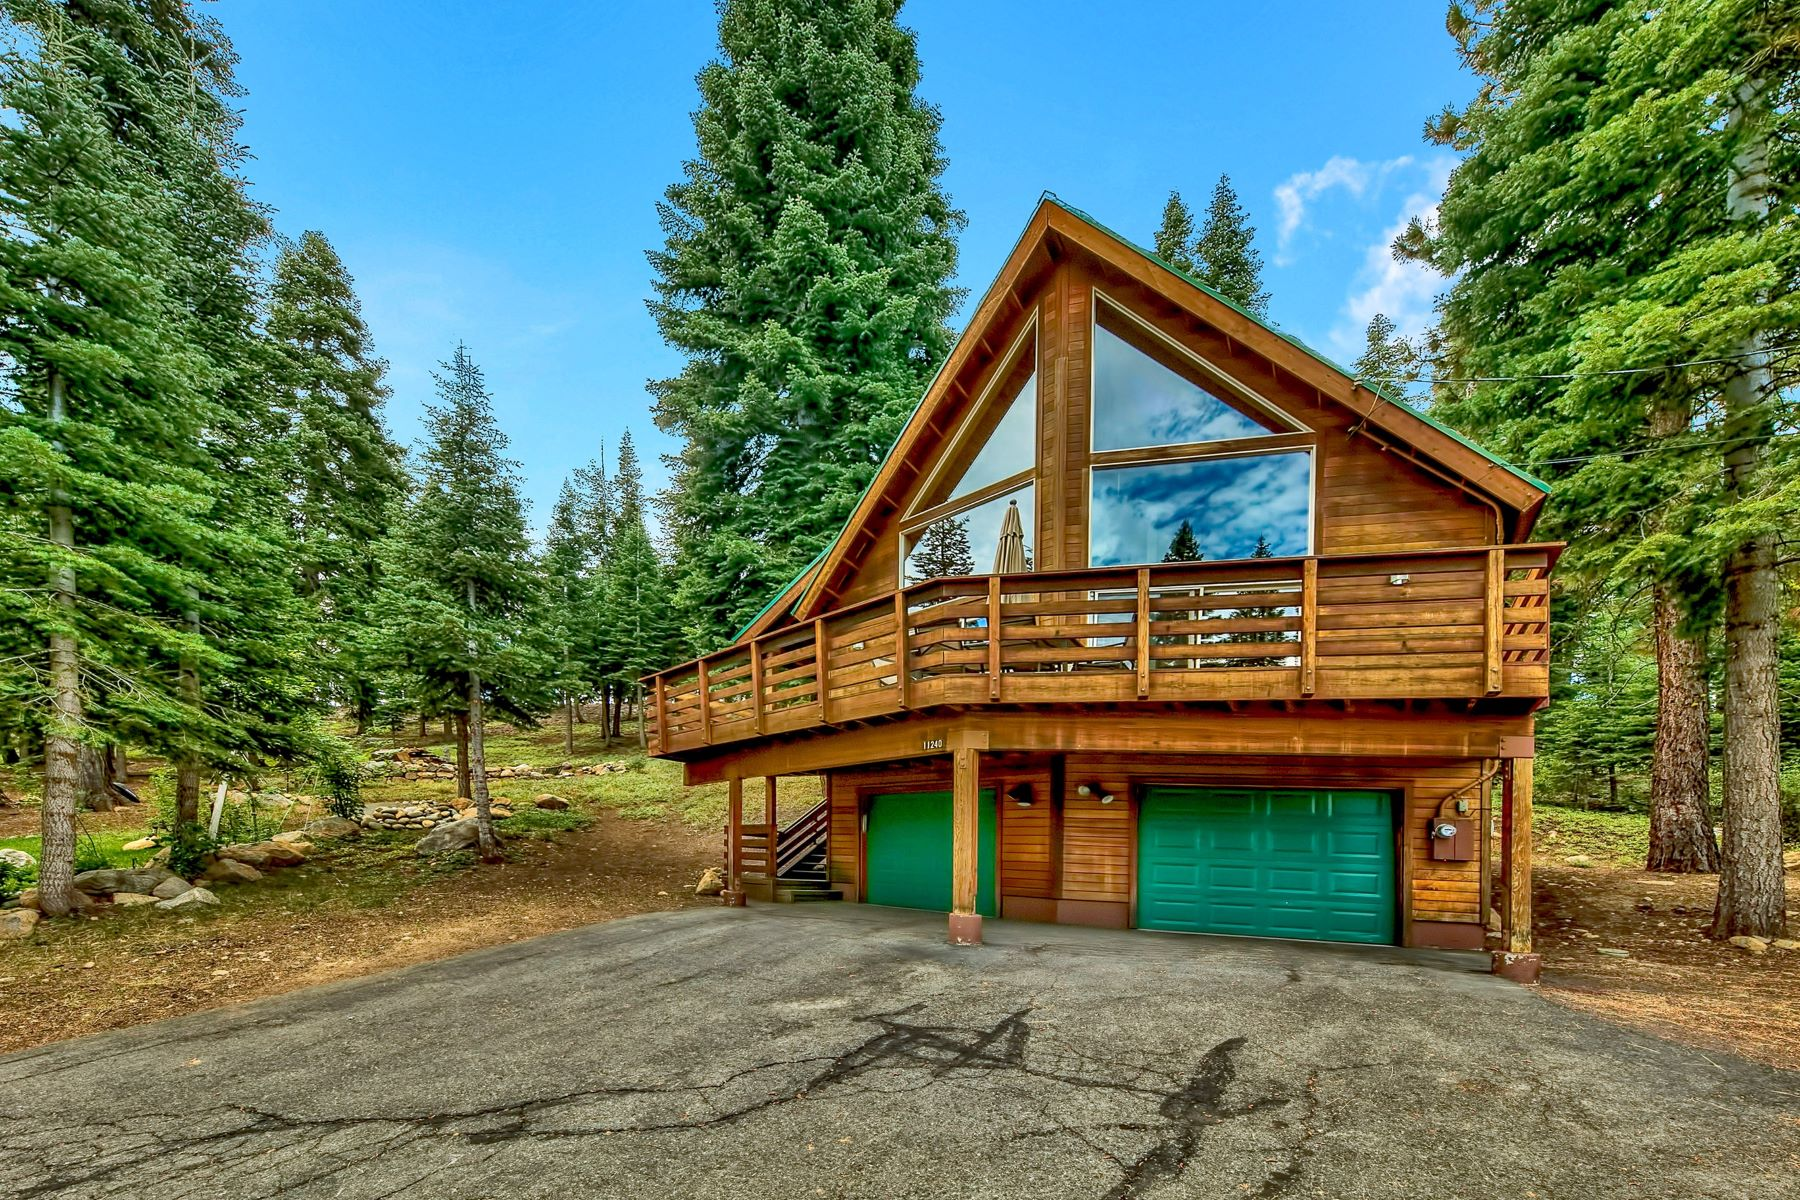 Single Family Homes for Active at 11240 Skislope Way, Truckee, CA 11240 Skislope Way Truckee, California 96161 United States